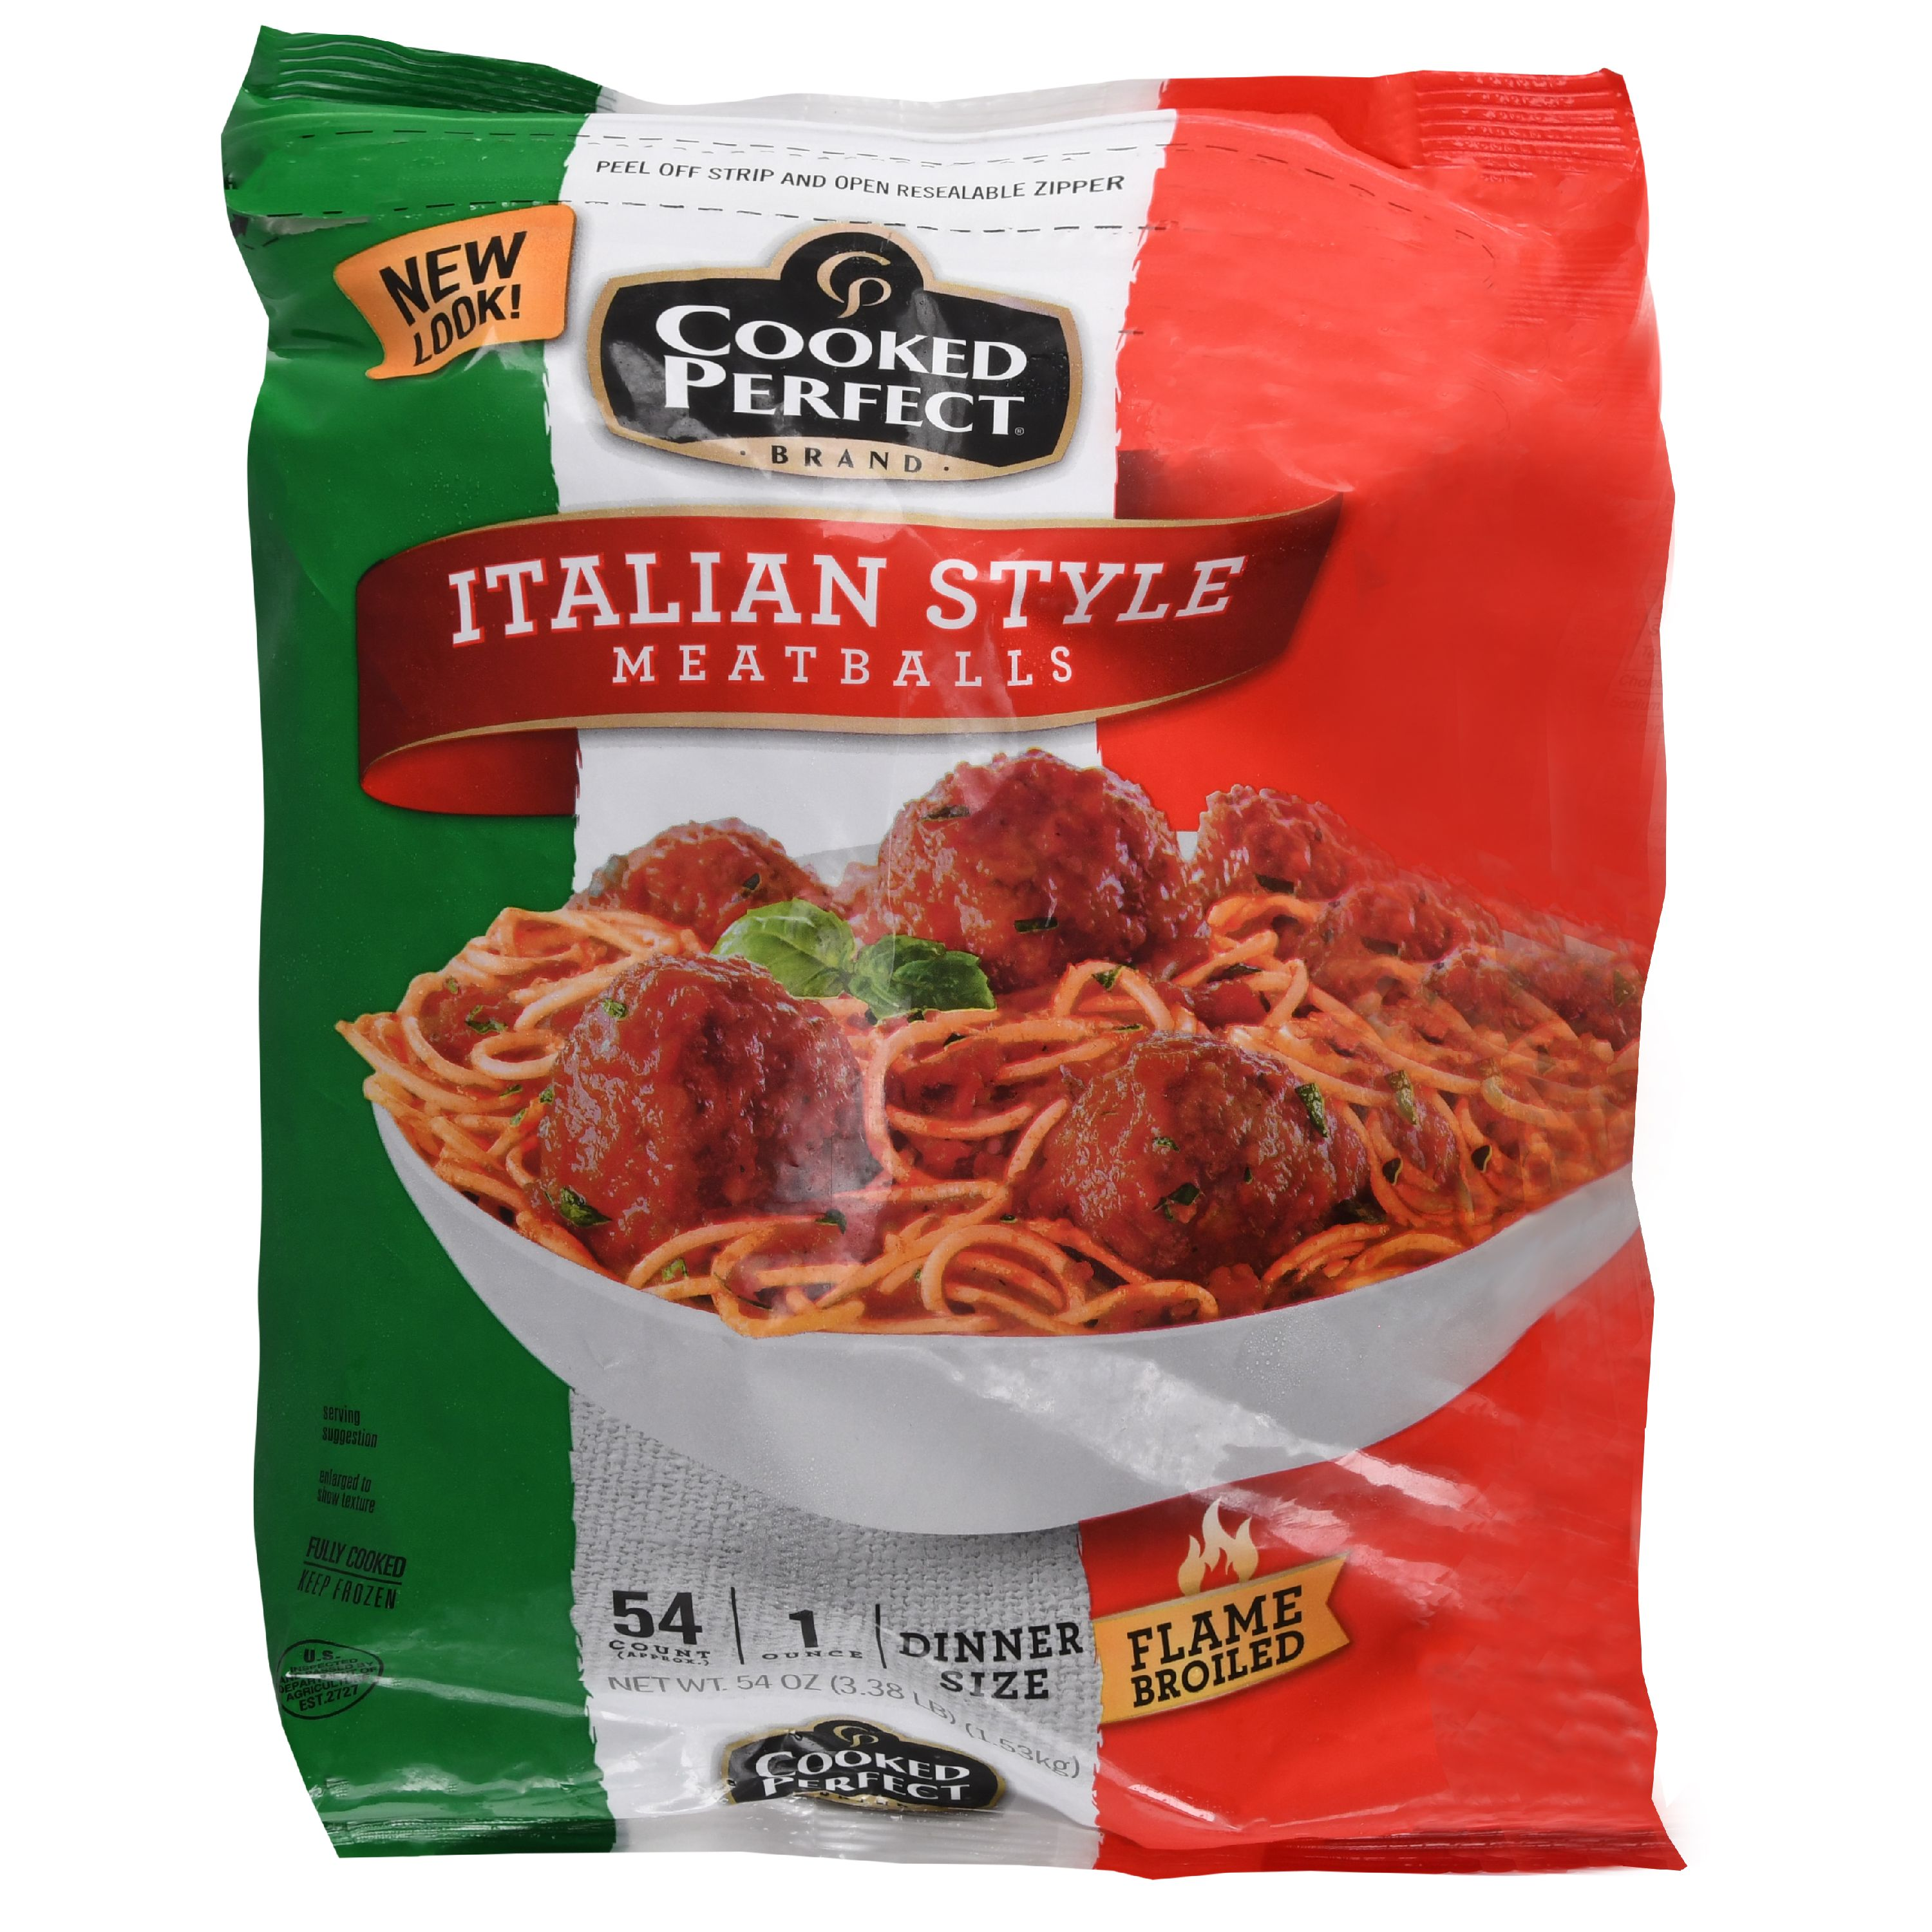 Cooked Perfect Italian Style Meatballs, 3.38 lb Bag